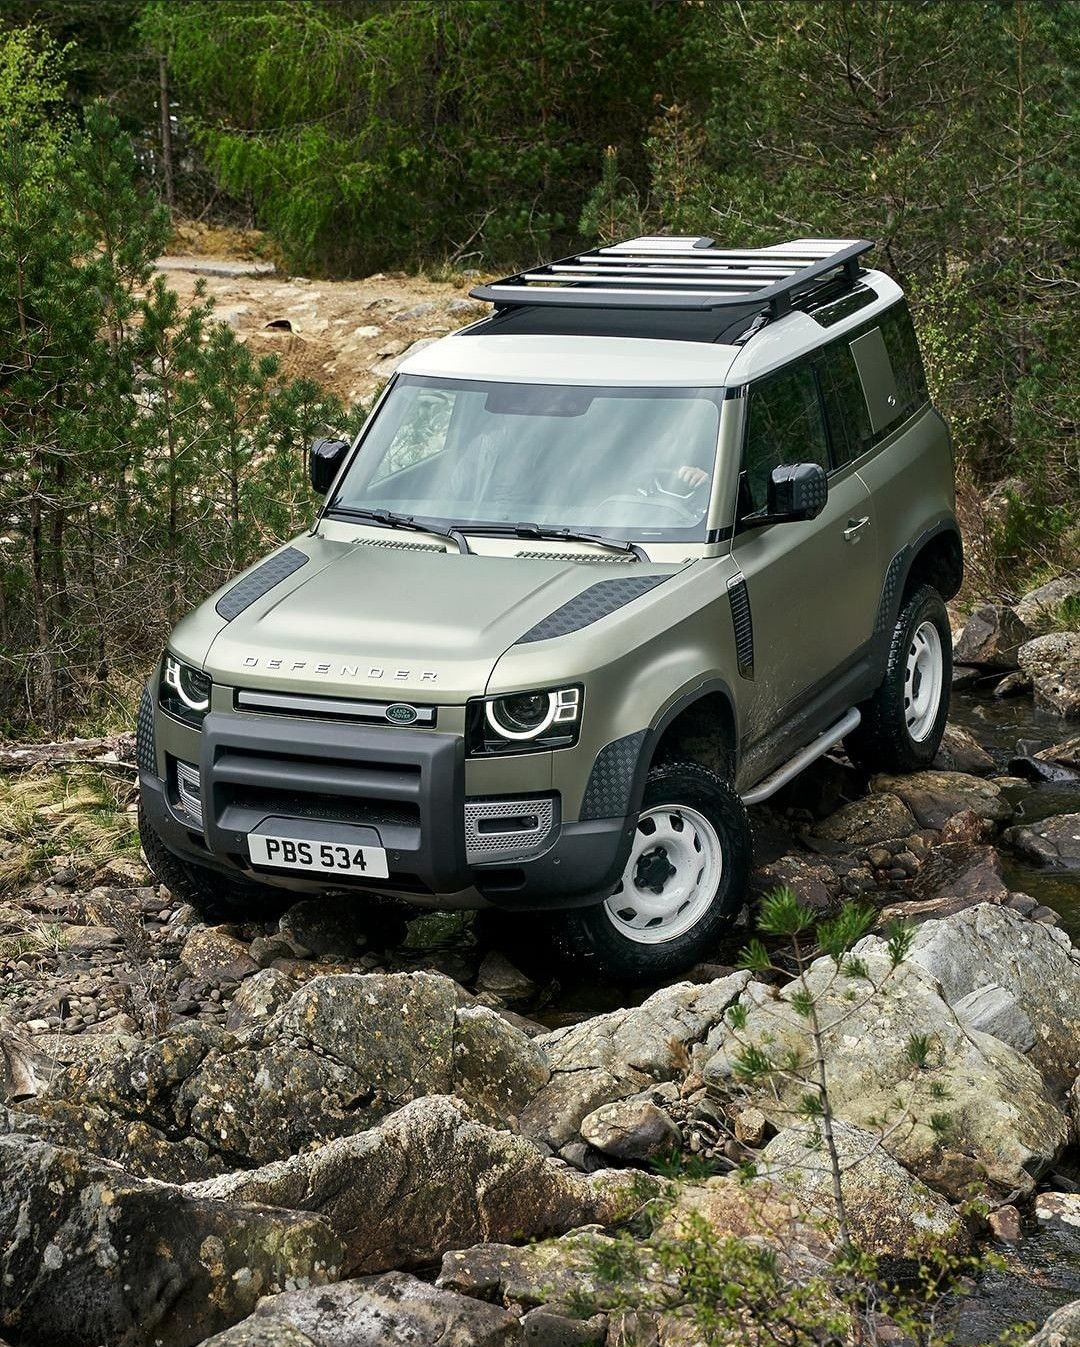 Pin on New Land Rover Defender